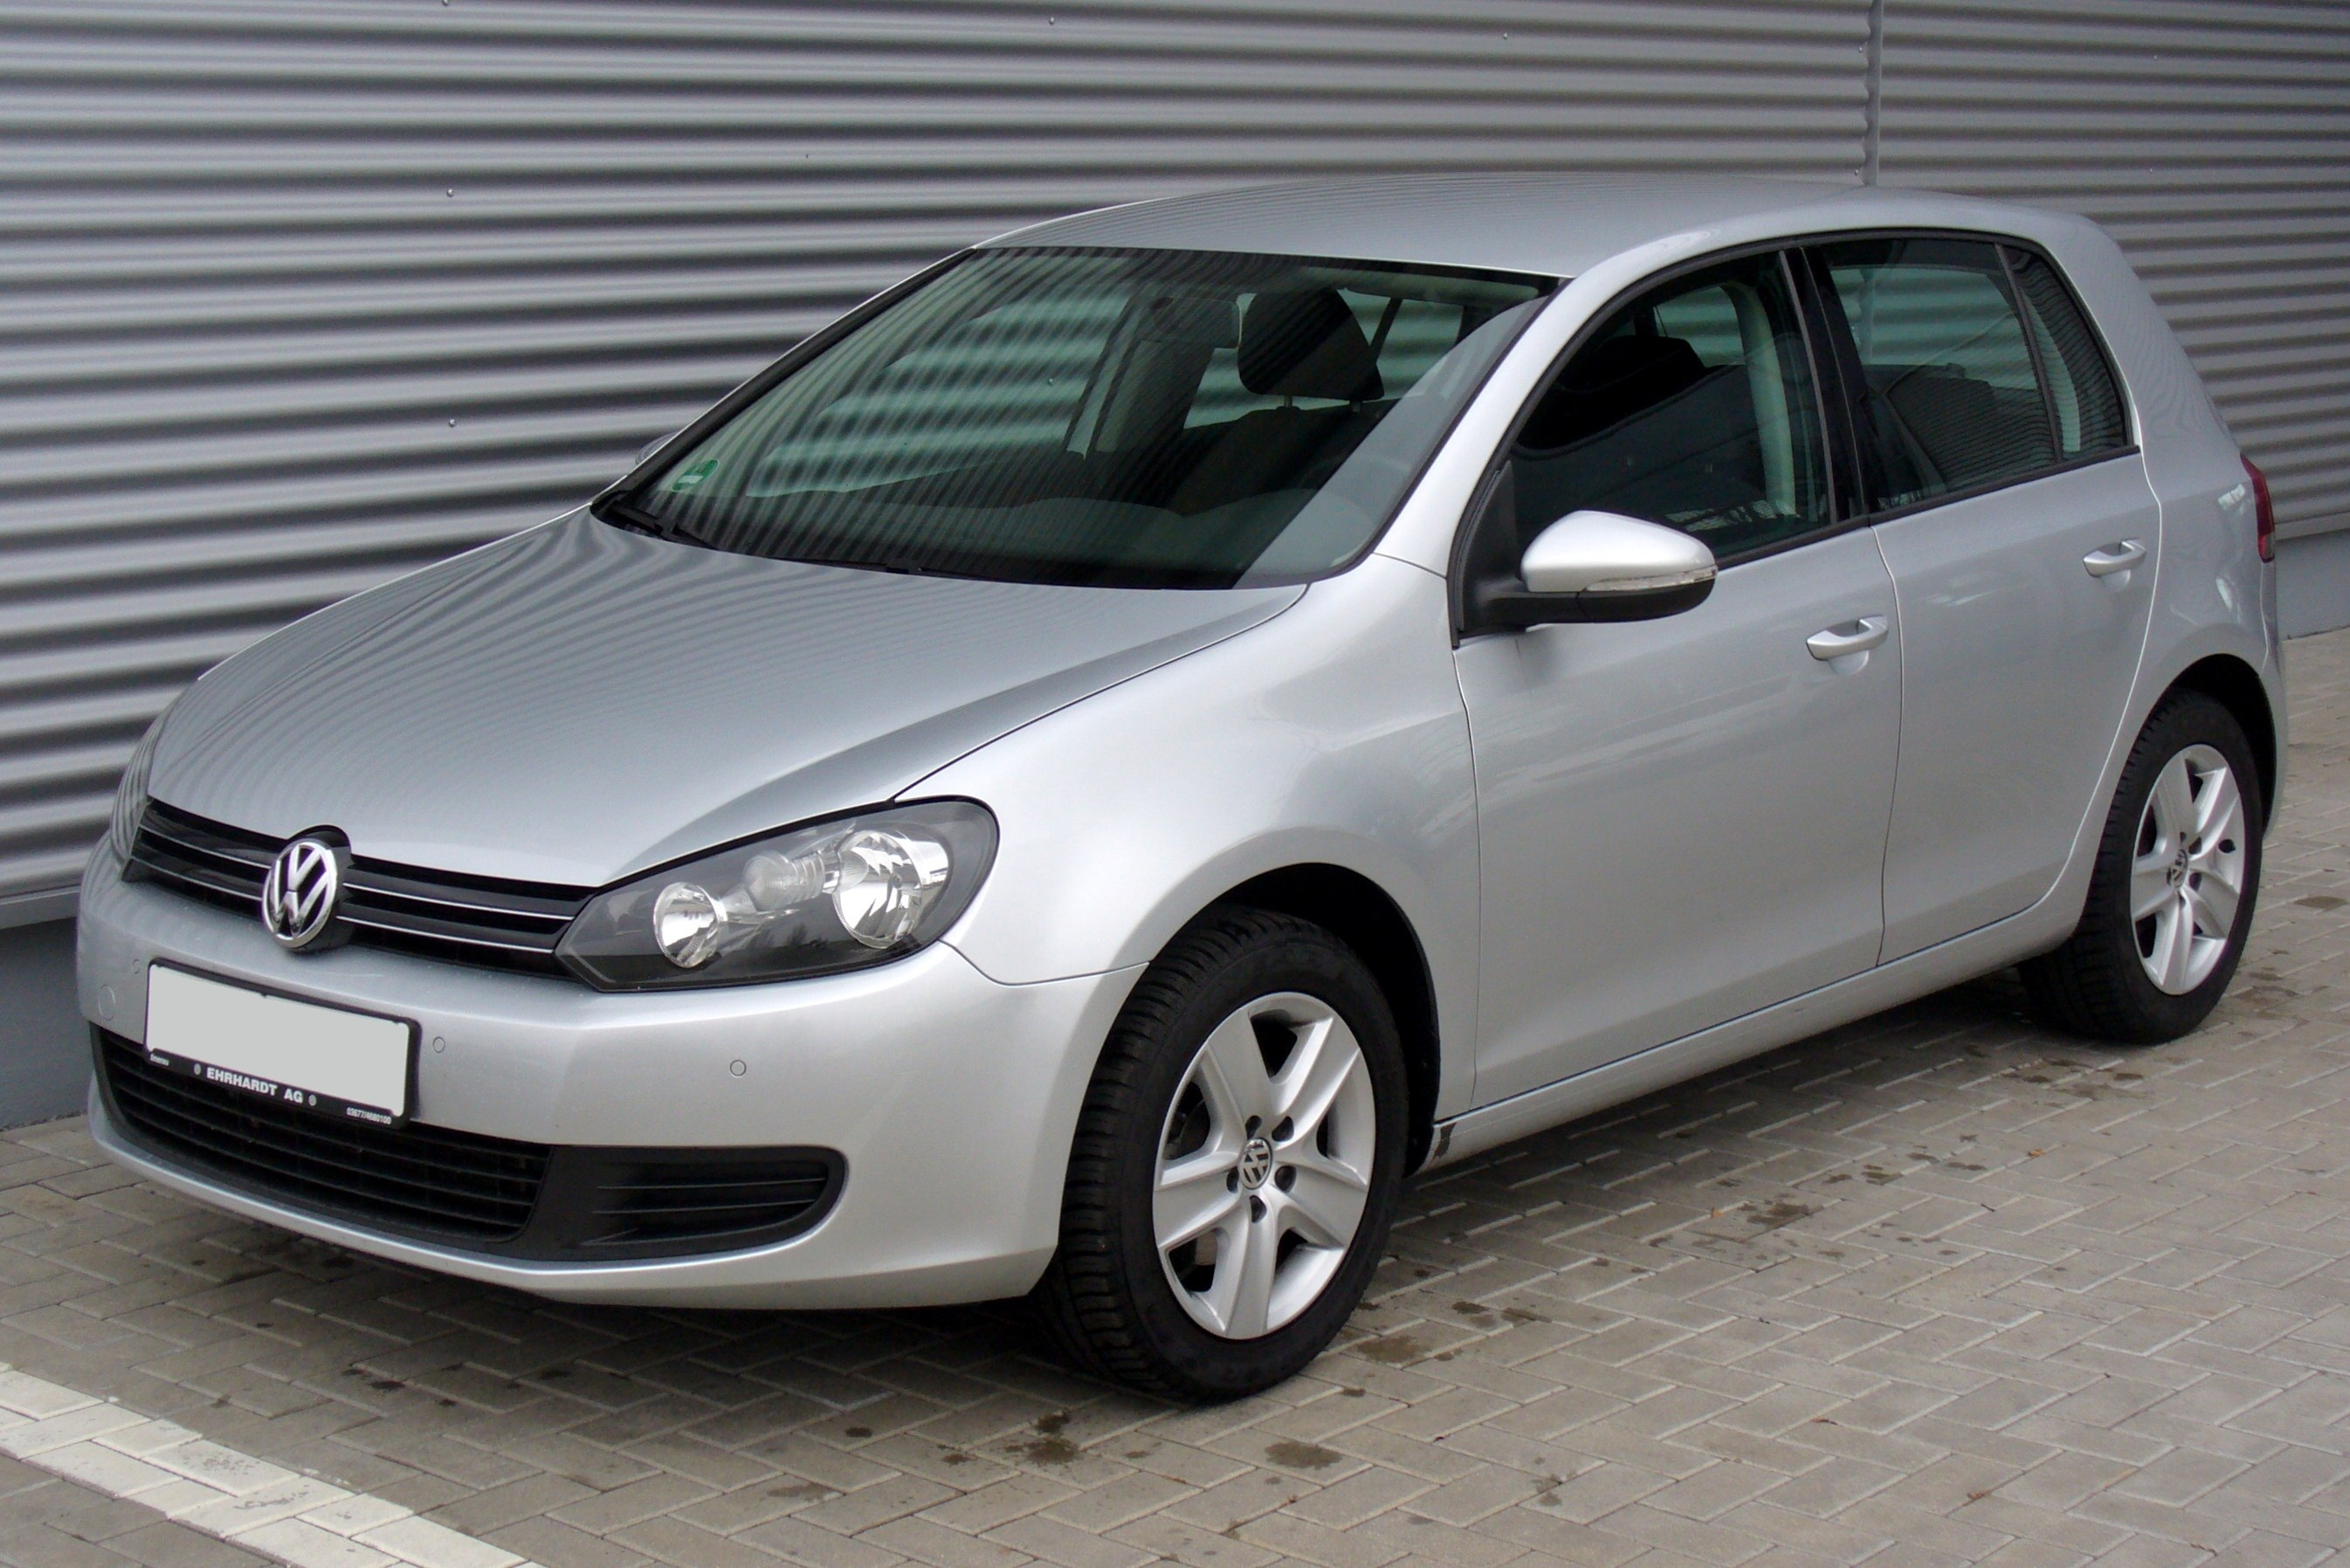 Volkswagen Golf 1.9 2010 photo - 8